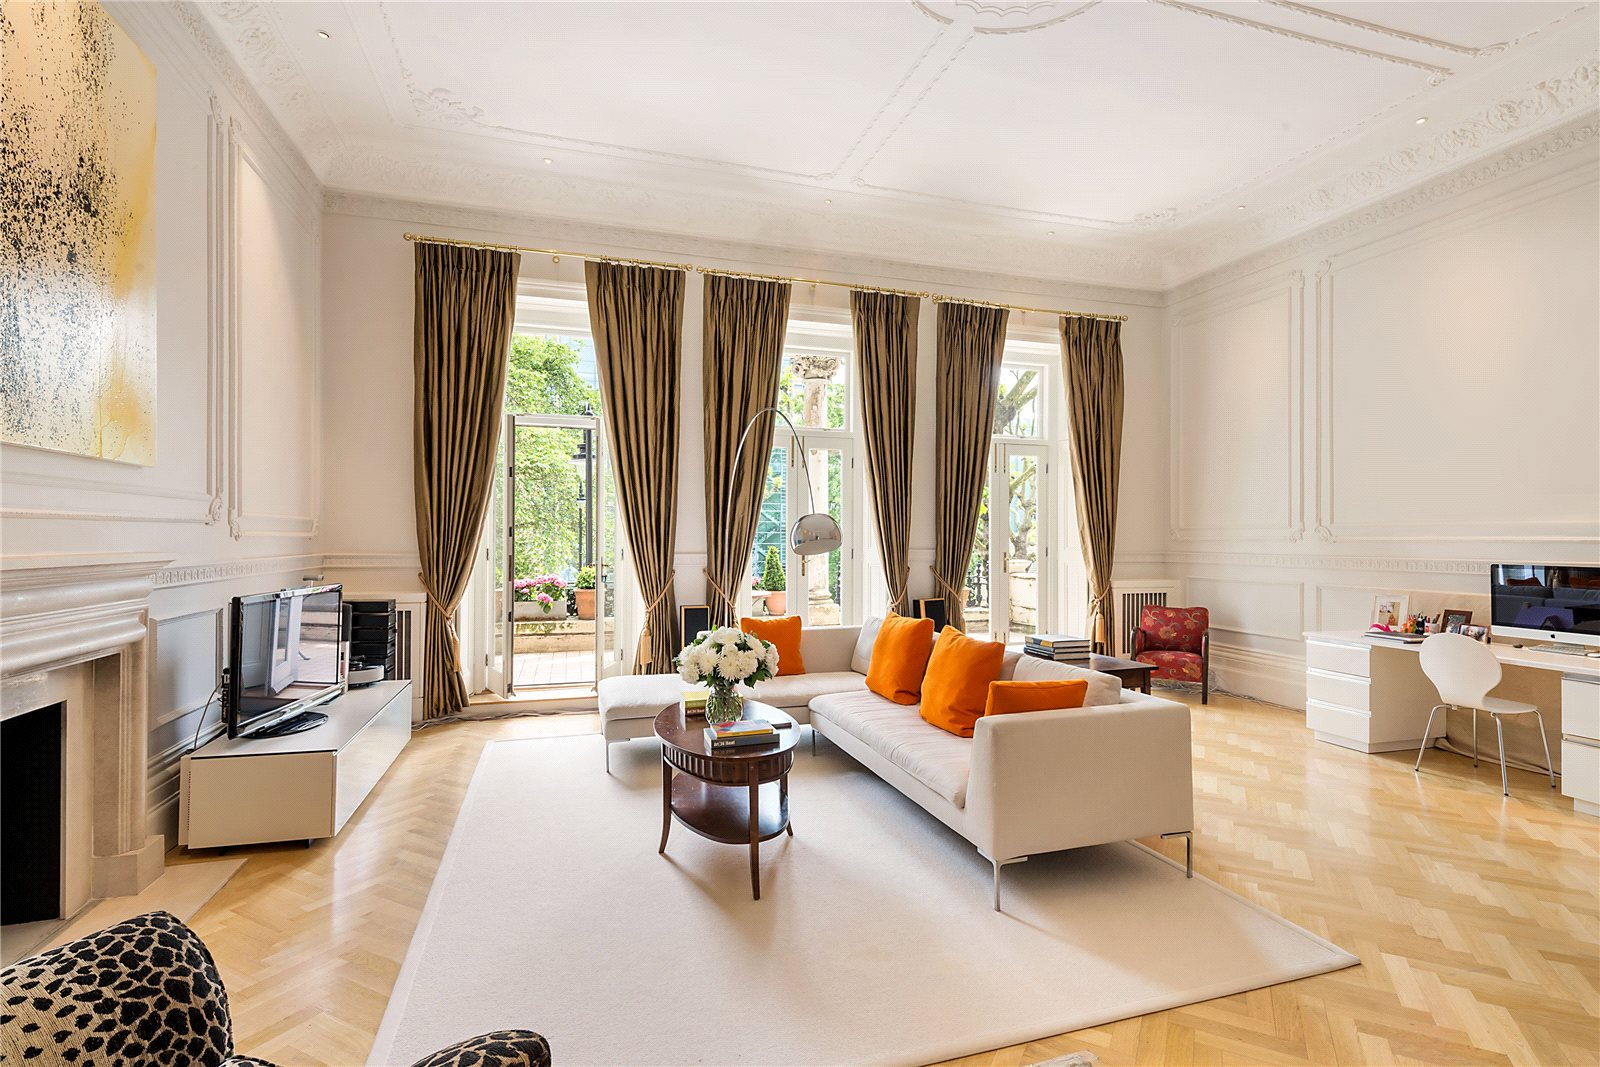 Appartement pour l Vente à Queen's Gate, South Kensington, London, SW7 South Kensington, London, Angleterre